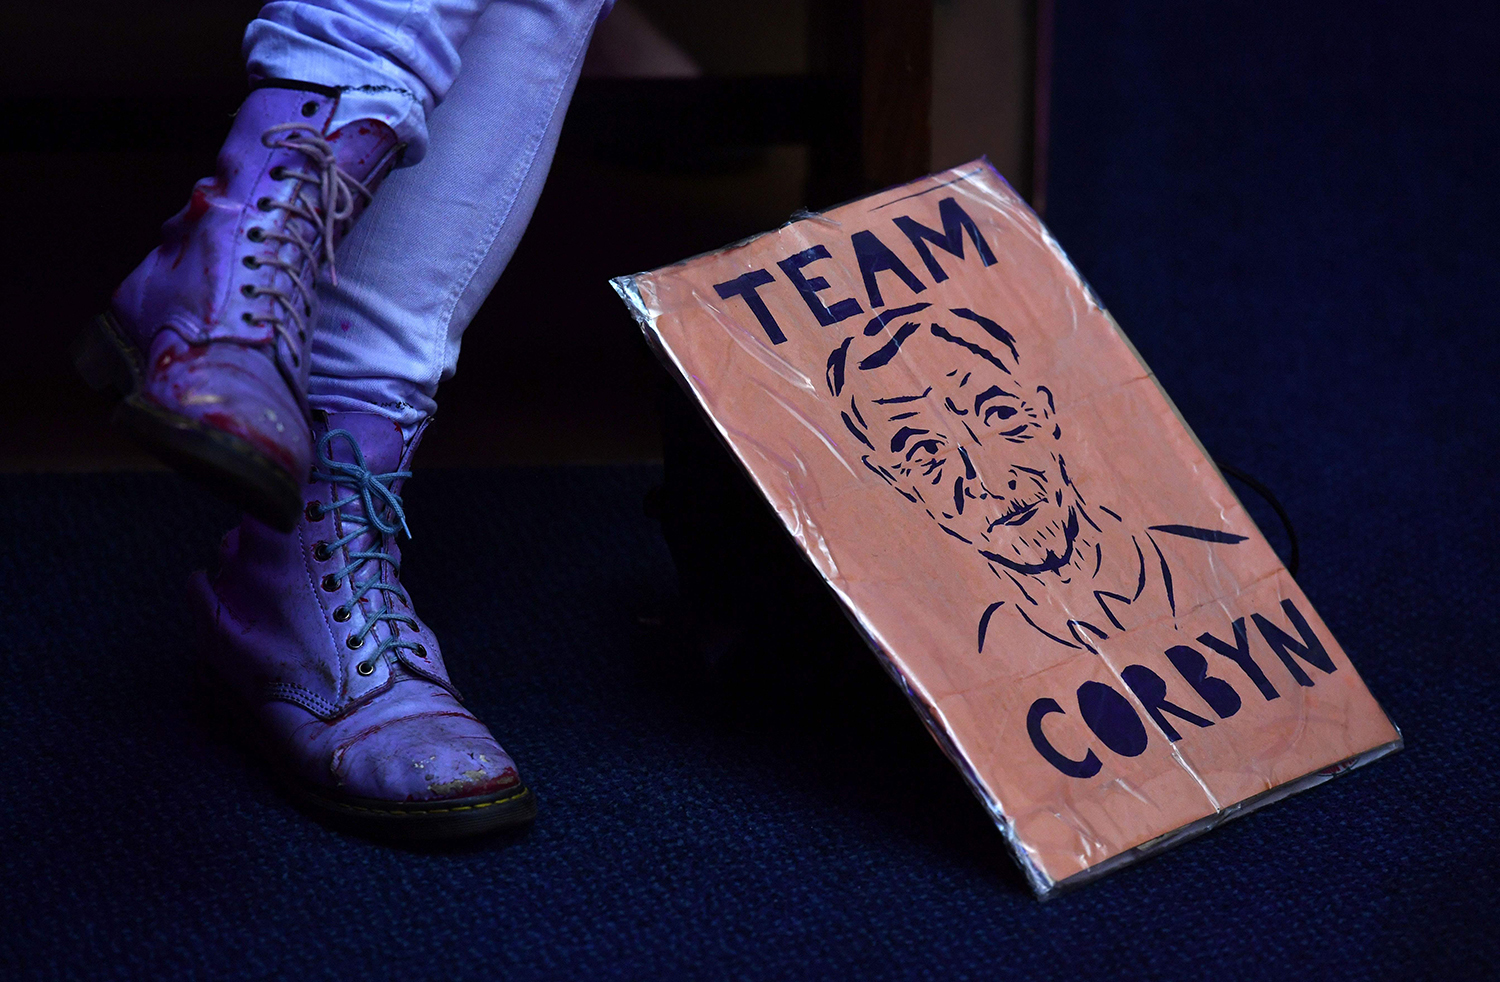 TOPSHOT - A woman with a placard in support of Britain's opposition Labour party leader Jeremy Corbyn listens to hims speak at a rally for the National Health Service (NHS) in London on December 15, 2016. / AFP PHOTO / Ben STANSALL / TT / kod 444